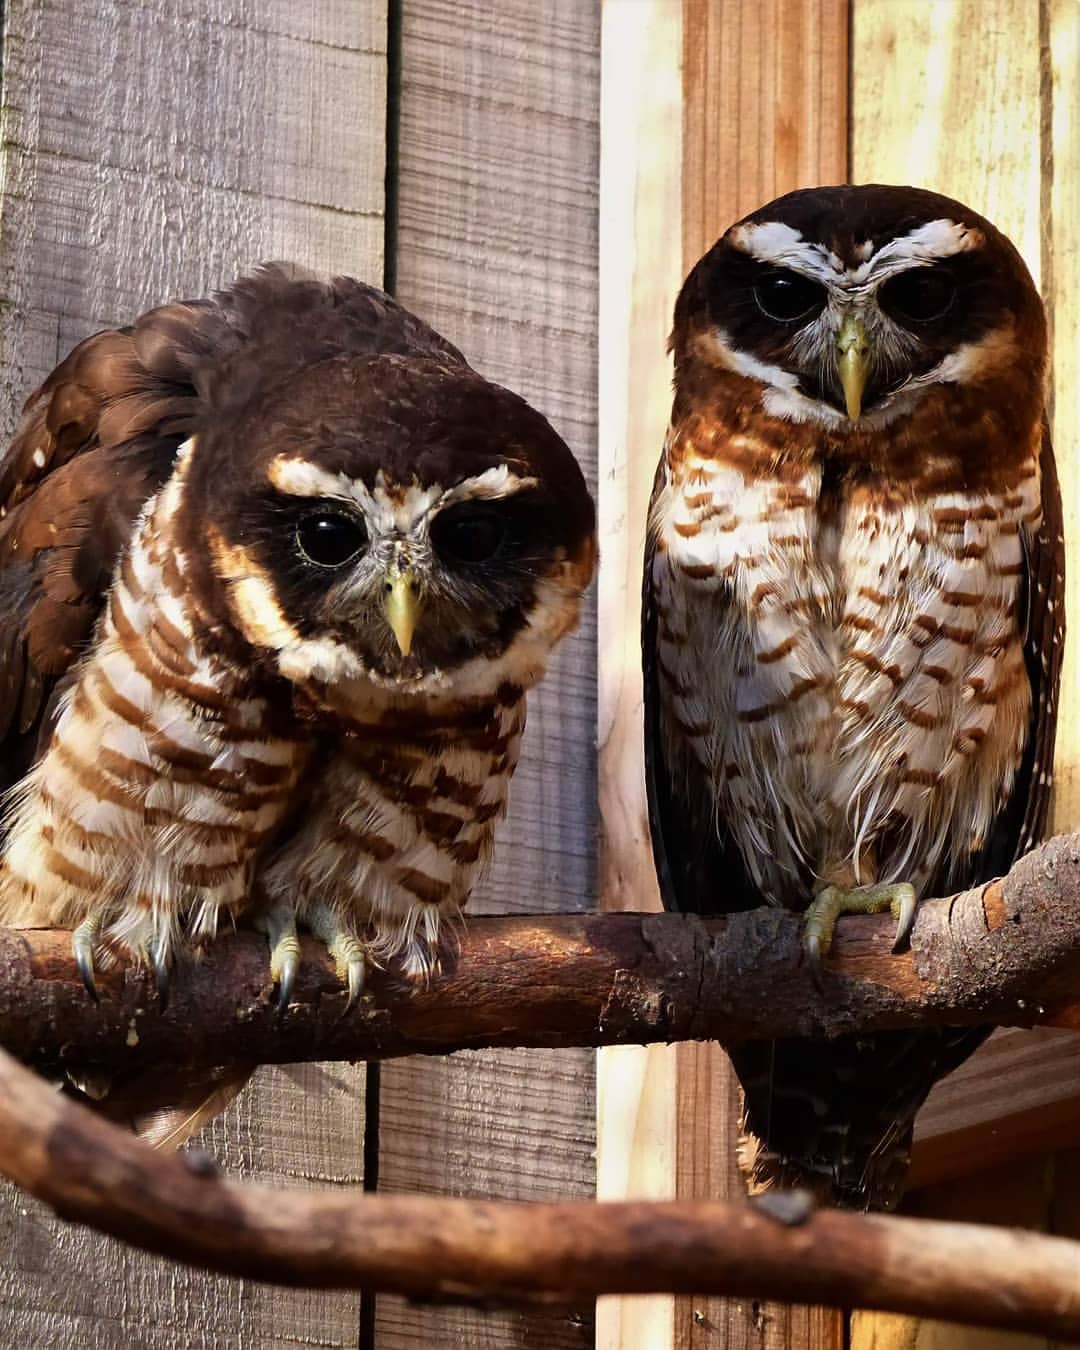 Band-bellied Owl photo